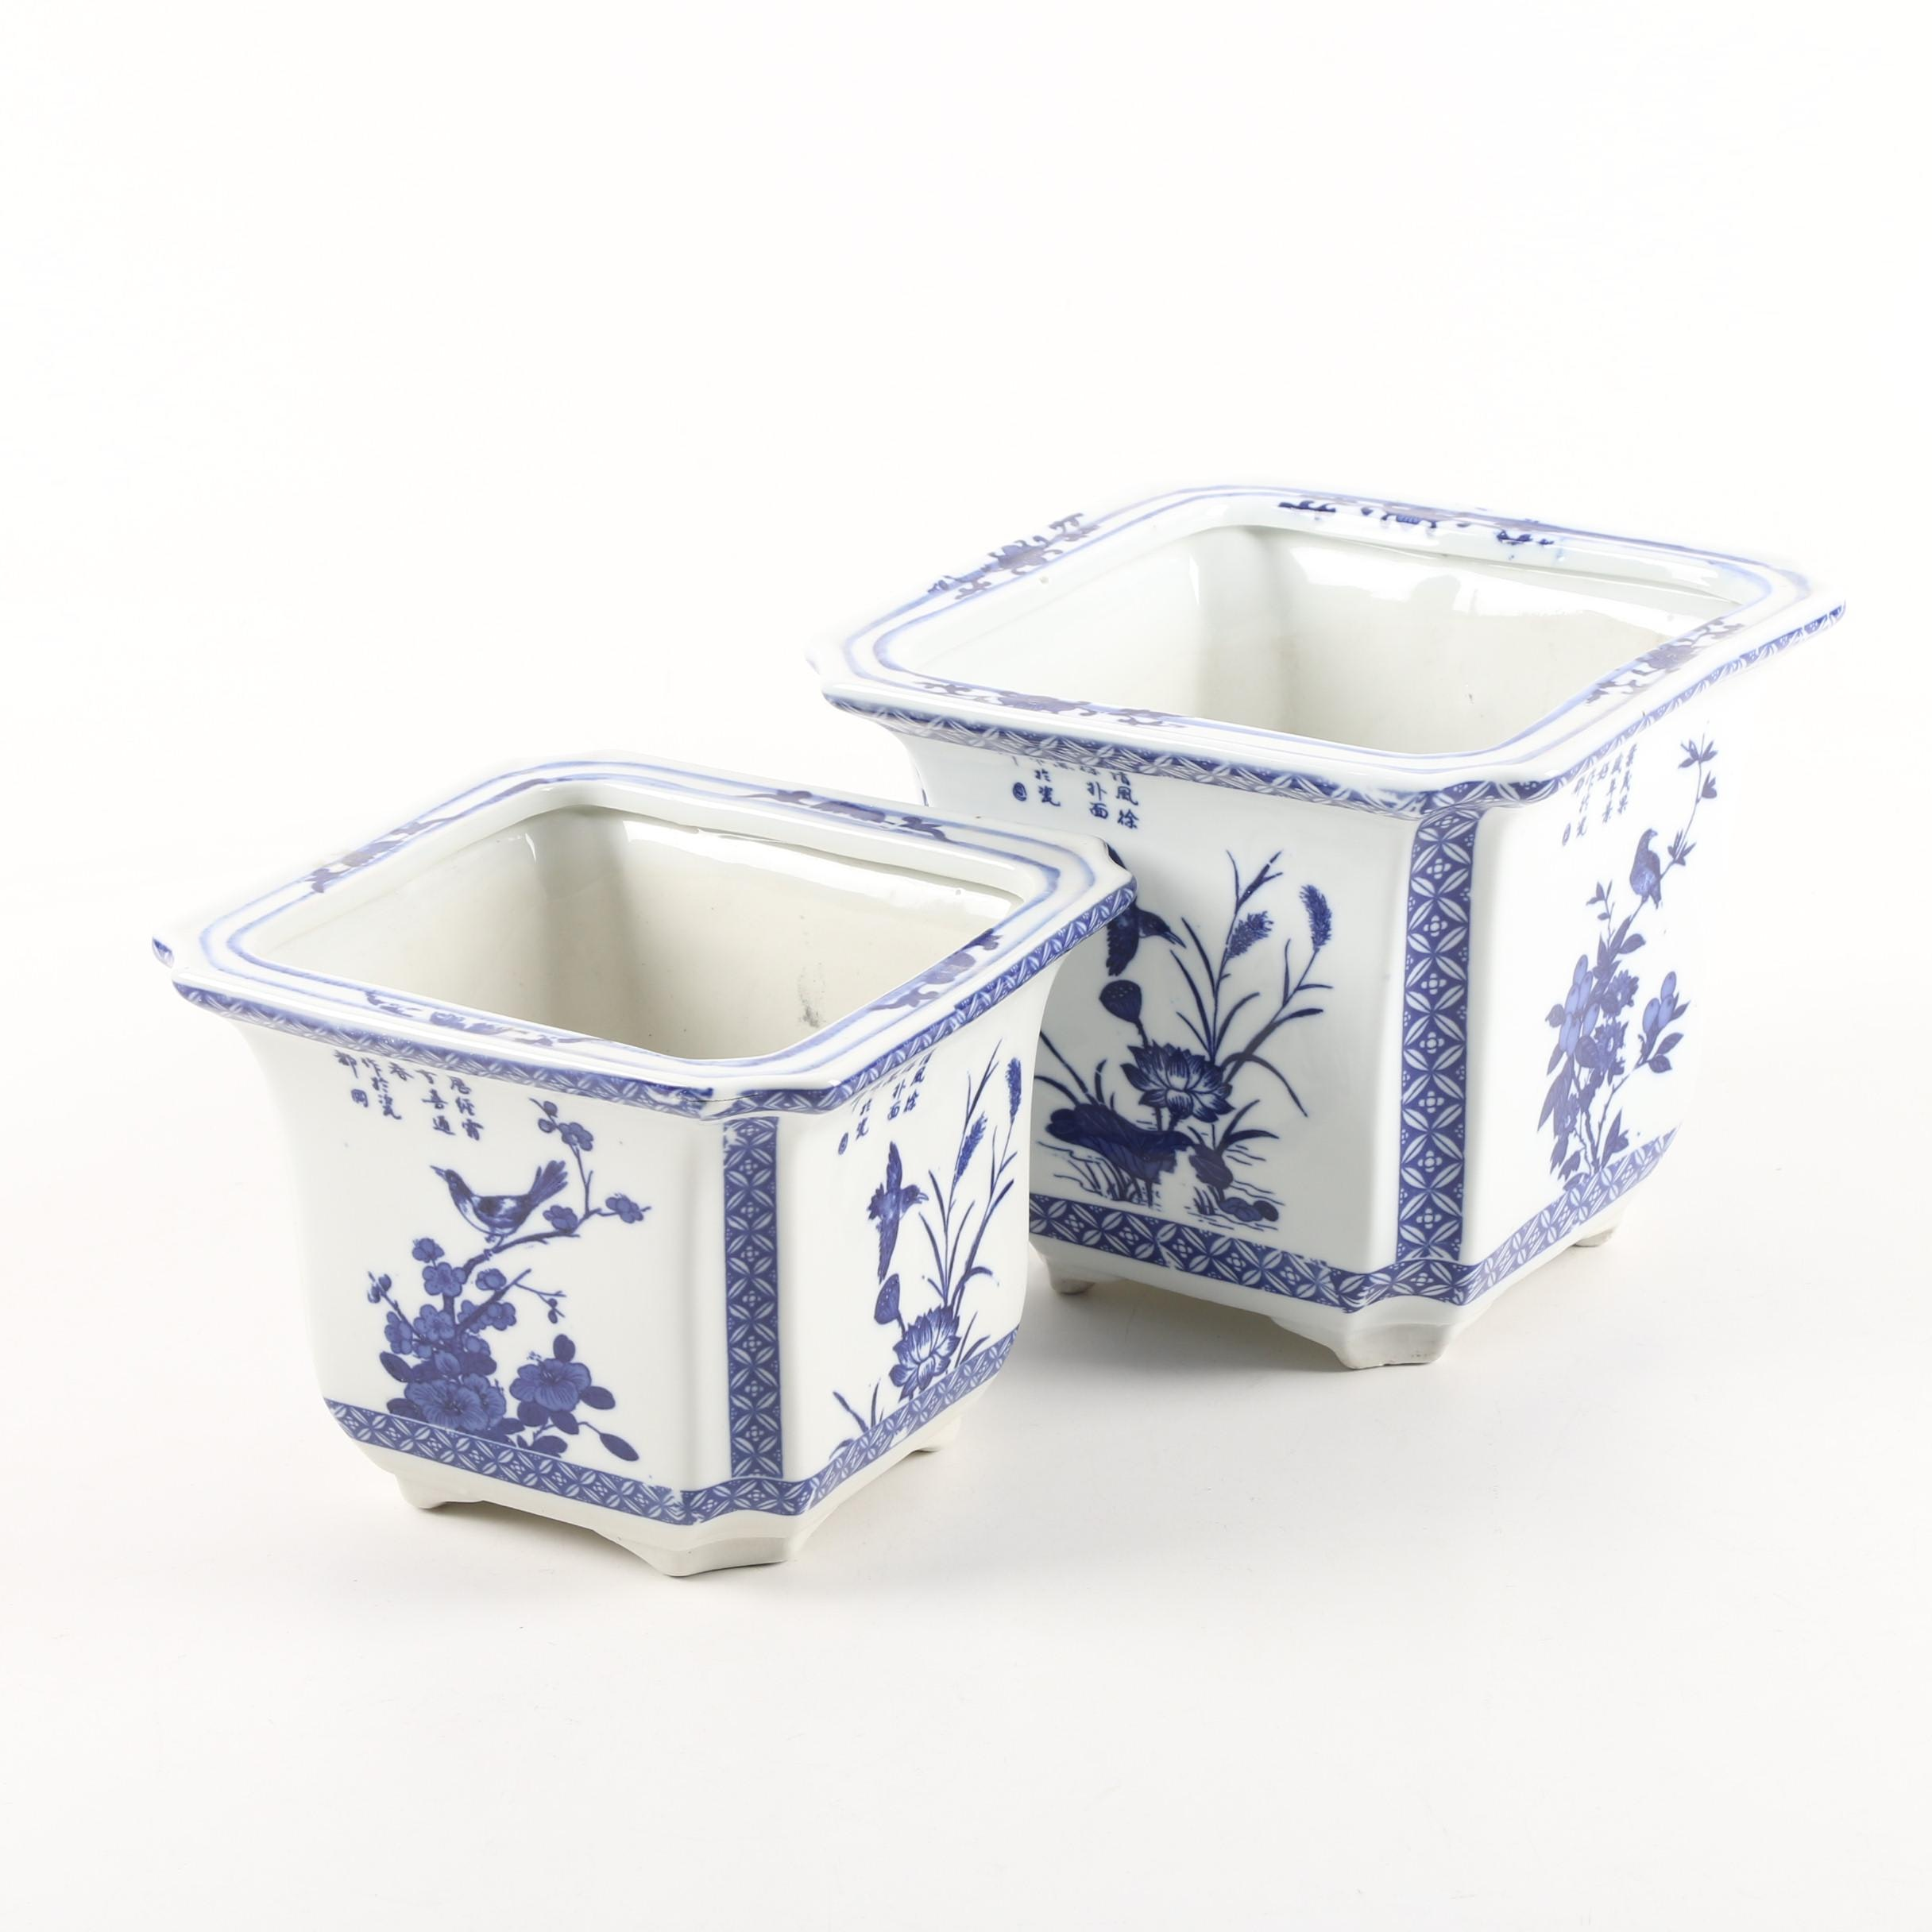 Chinese Blue and White Porcelain Jardinieres